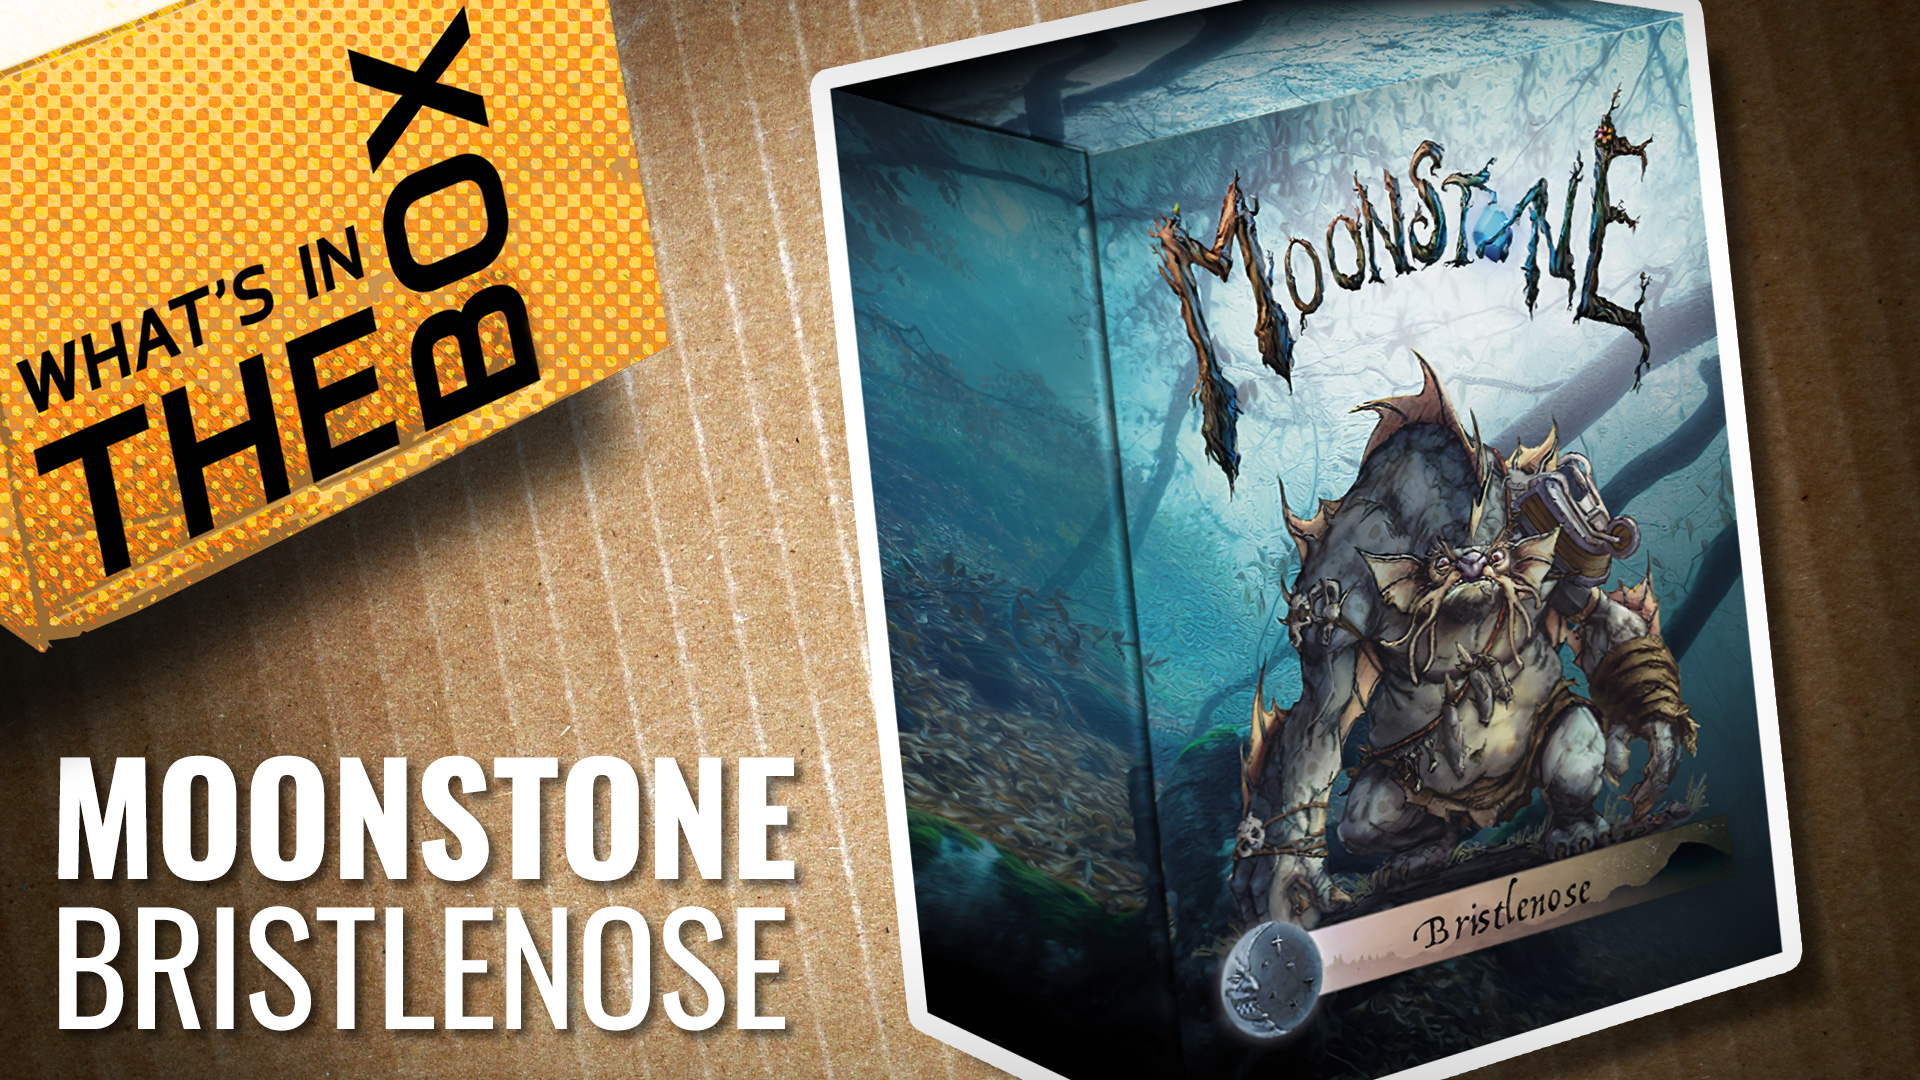 Unboxing---Moonstone-Bristlenose-coverimage